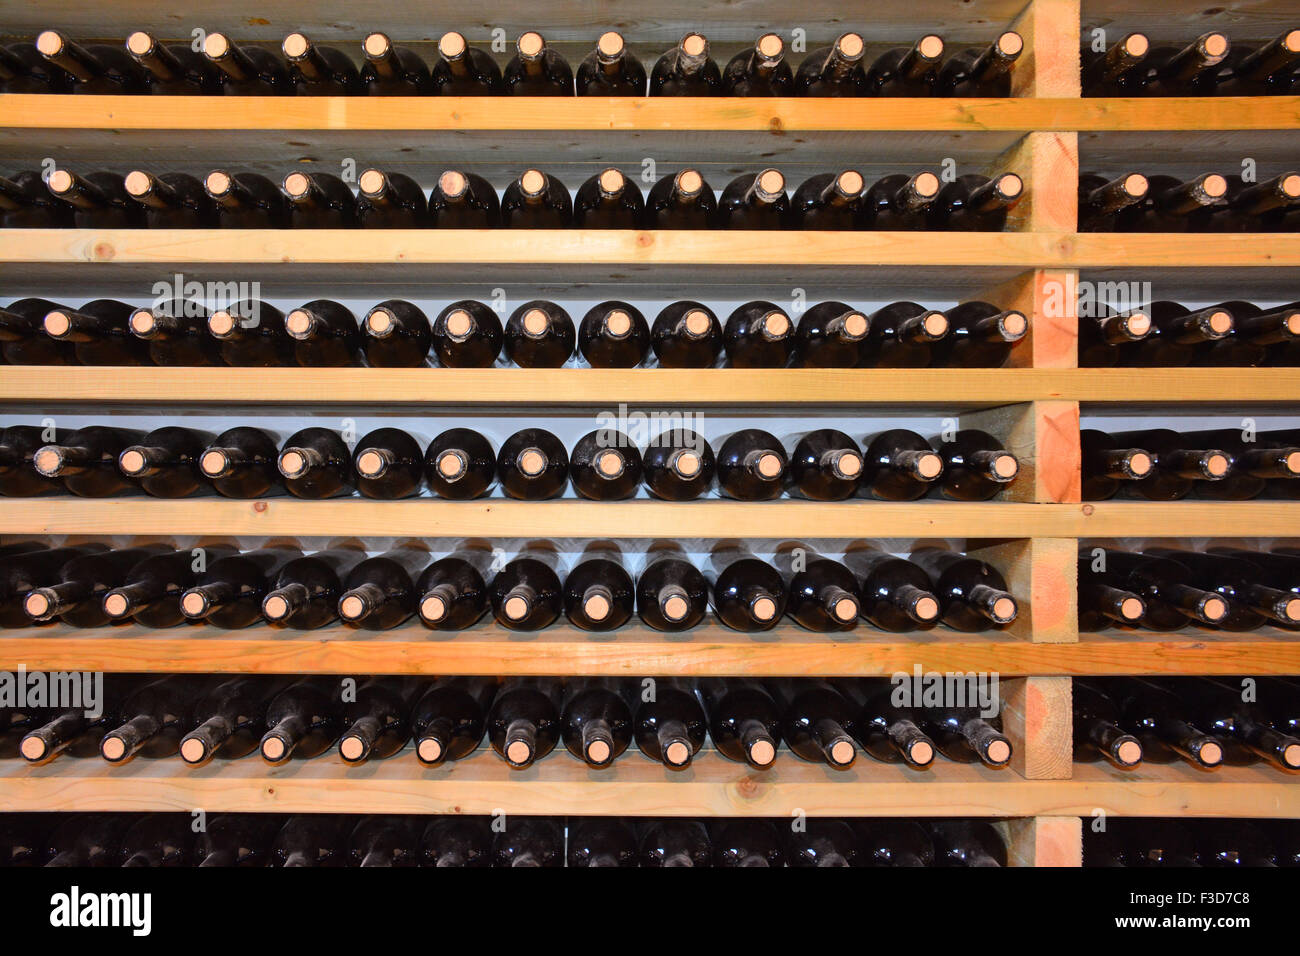 Wine bottles in the cellar - Stock Image